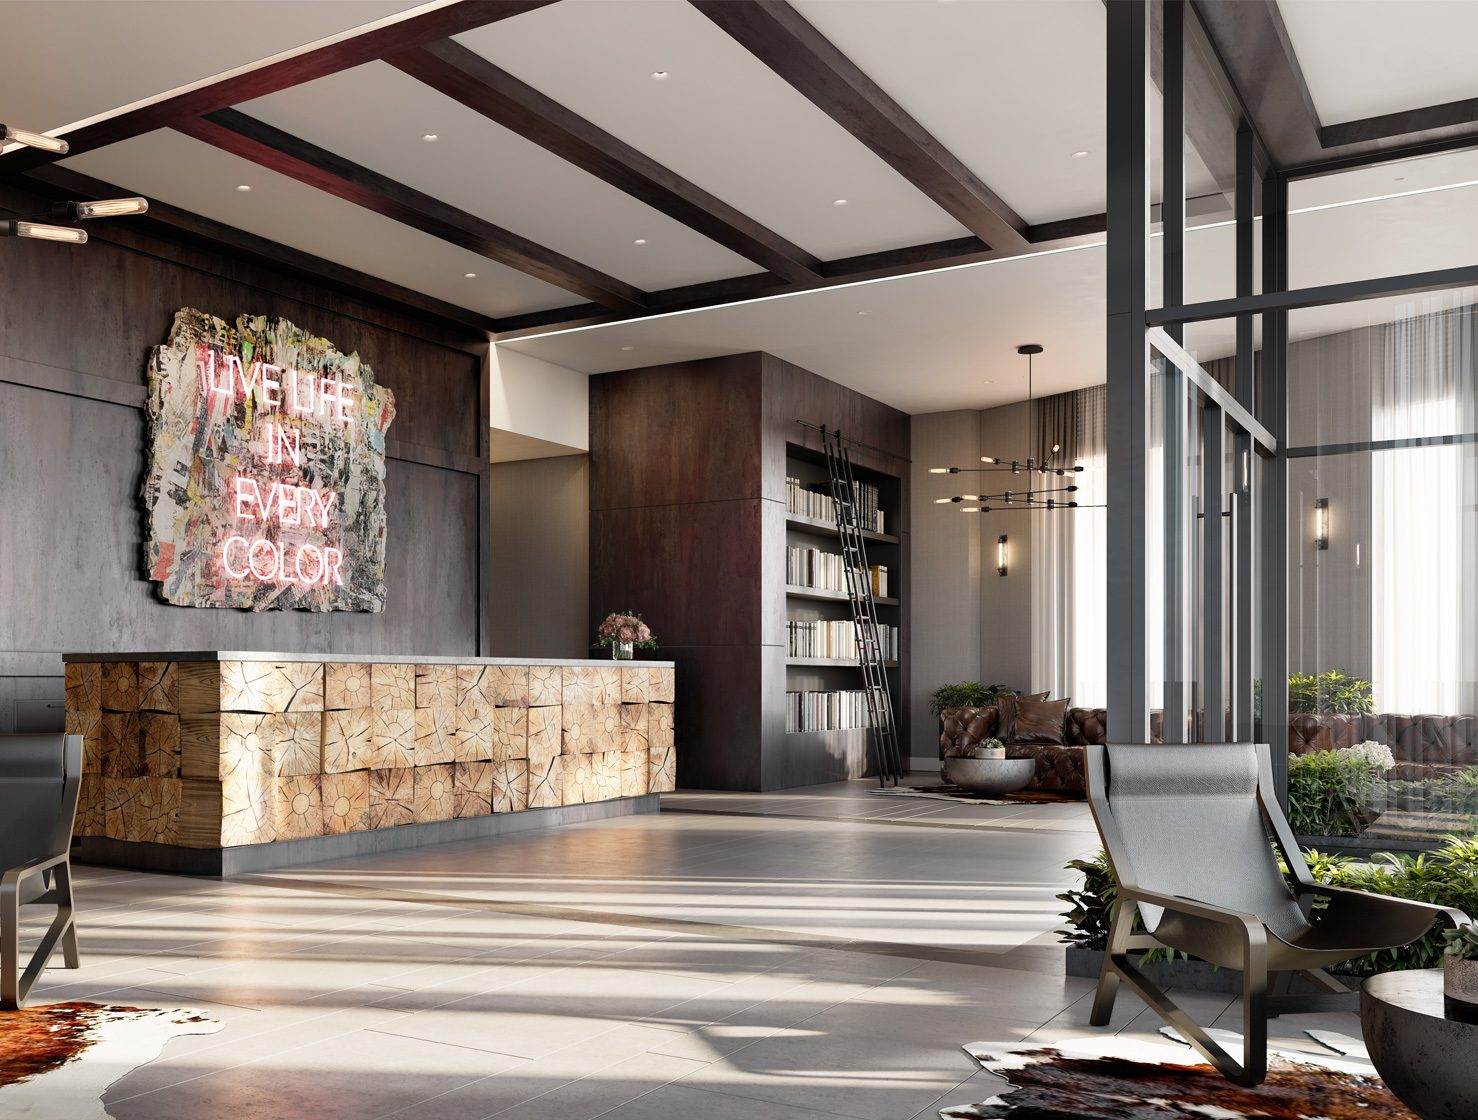 New Brooklyn Luxury Rentals at 475 Clermont